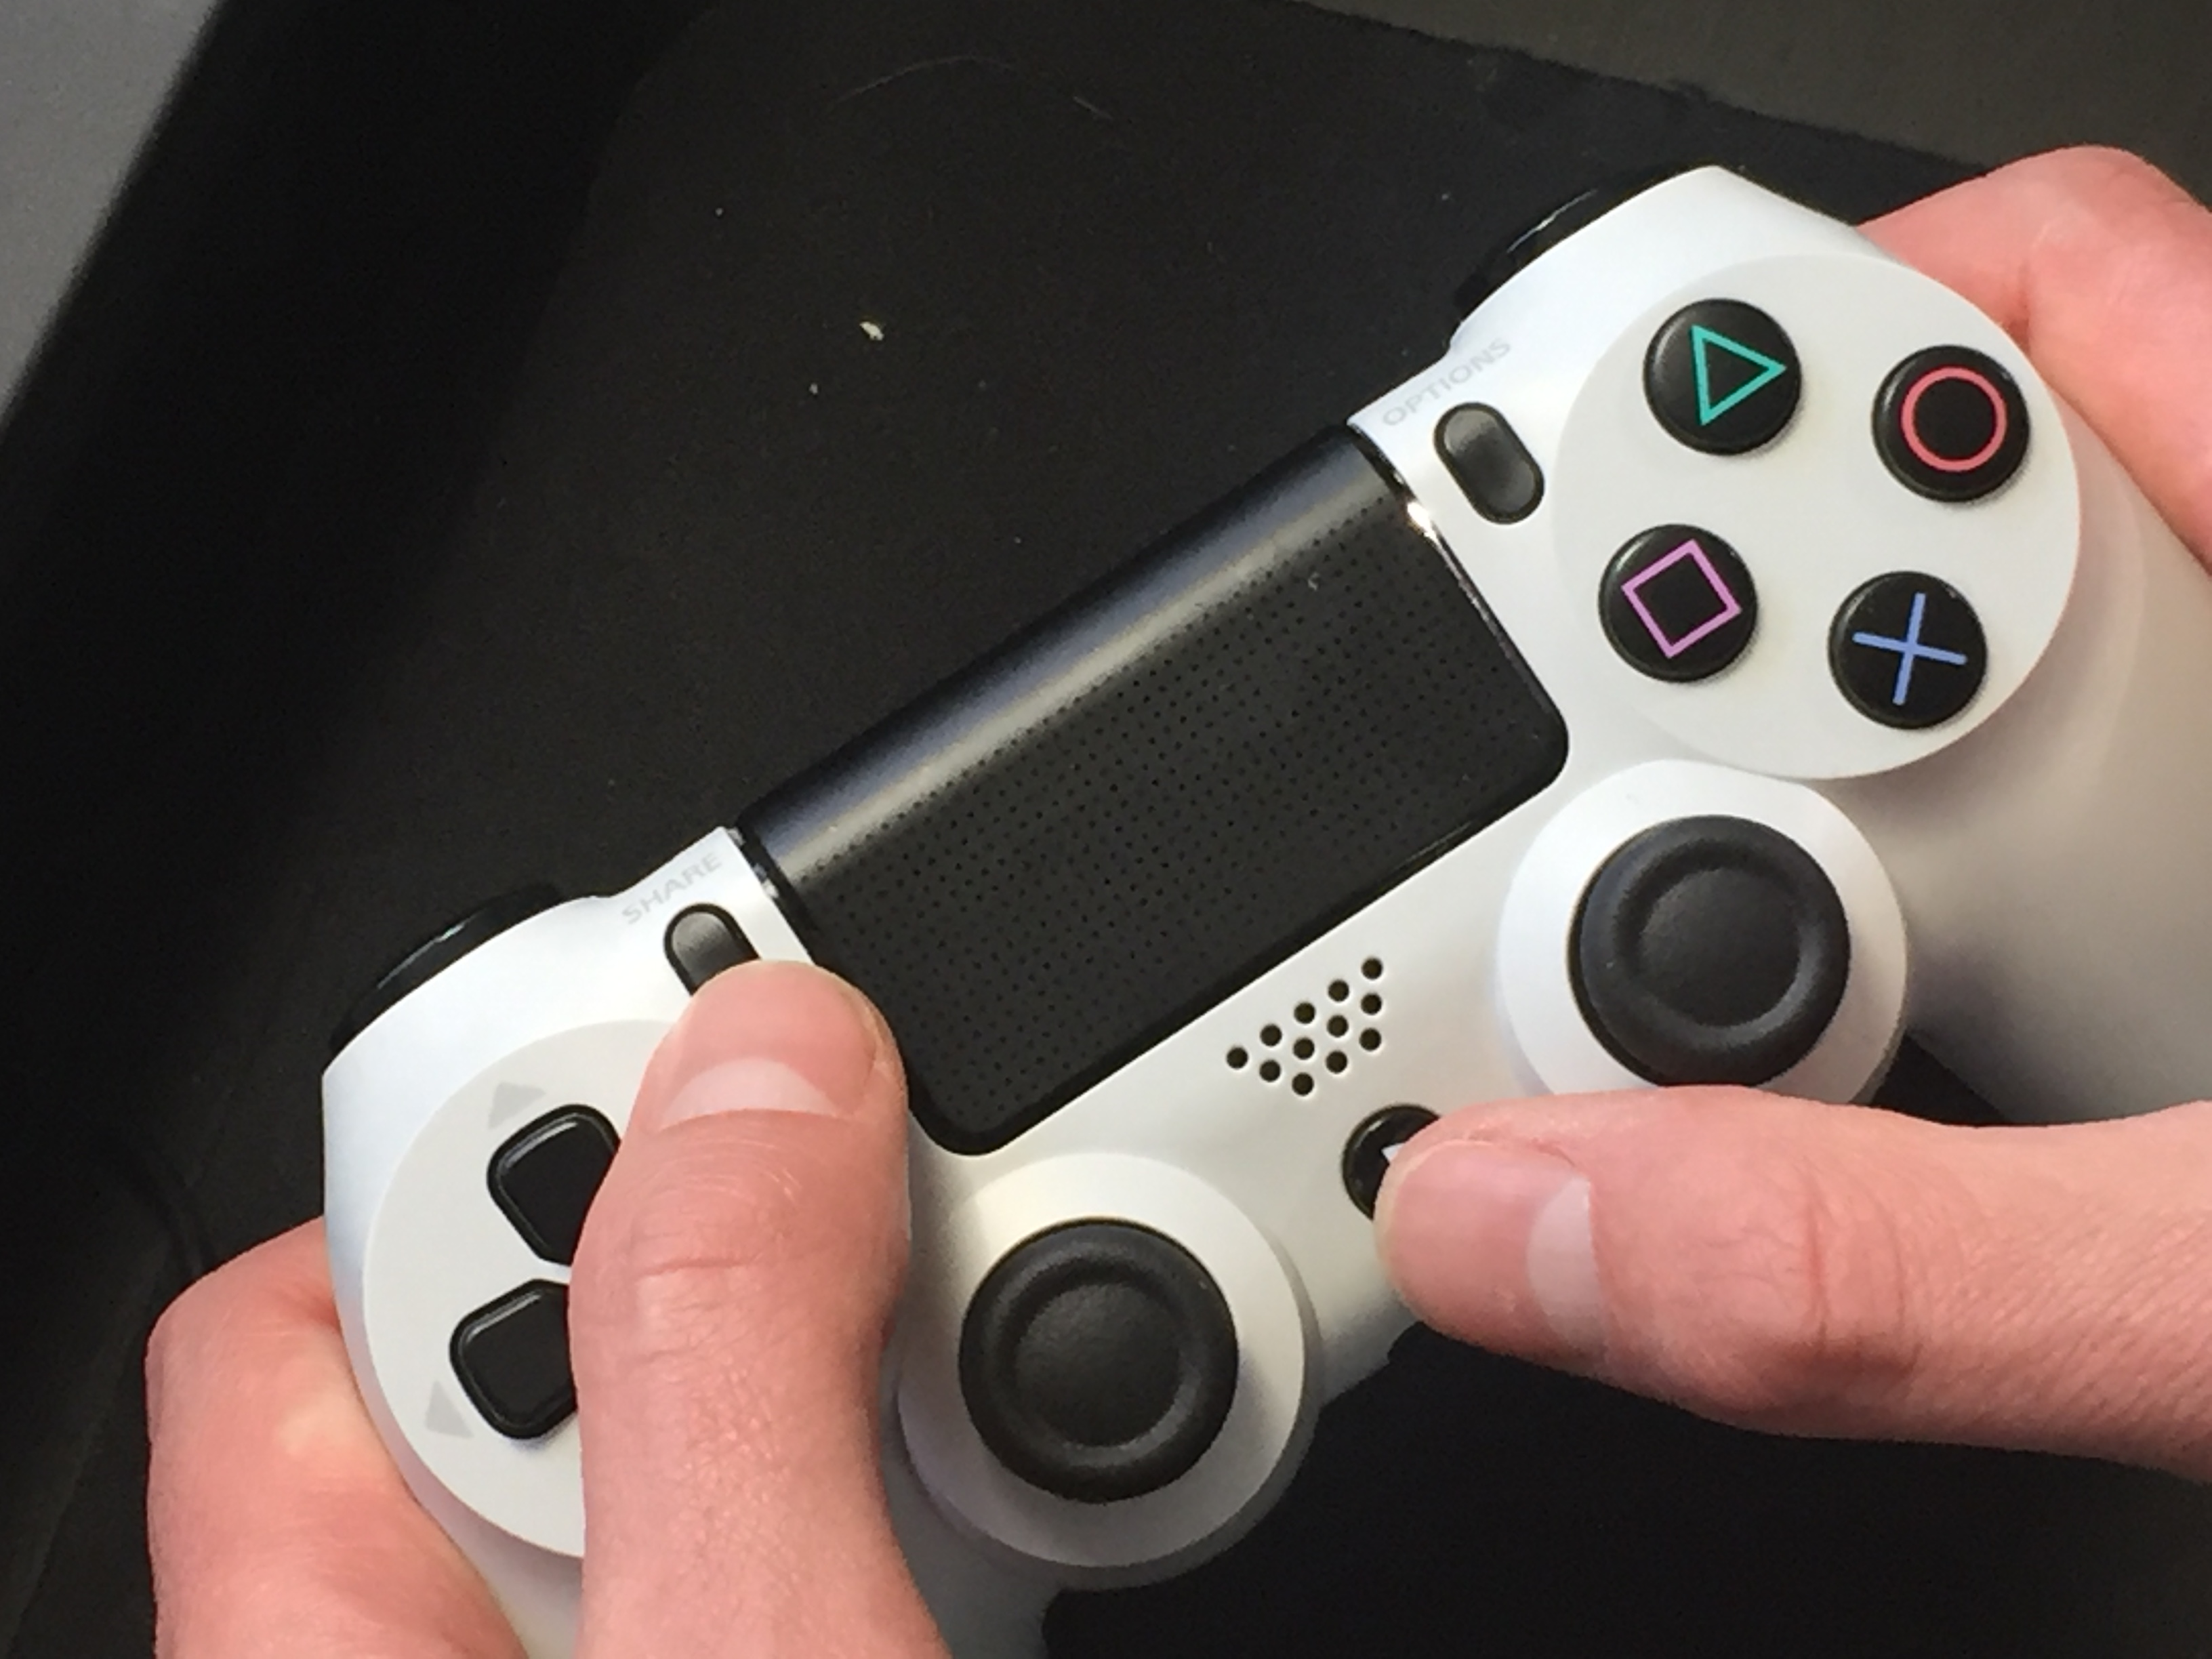 RetroPie PS4 controller via Bluetooth on Rasberry Pi 3